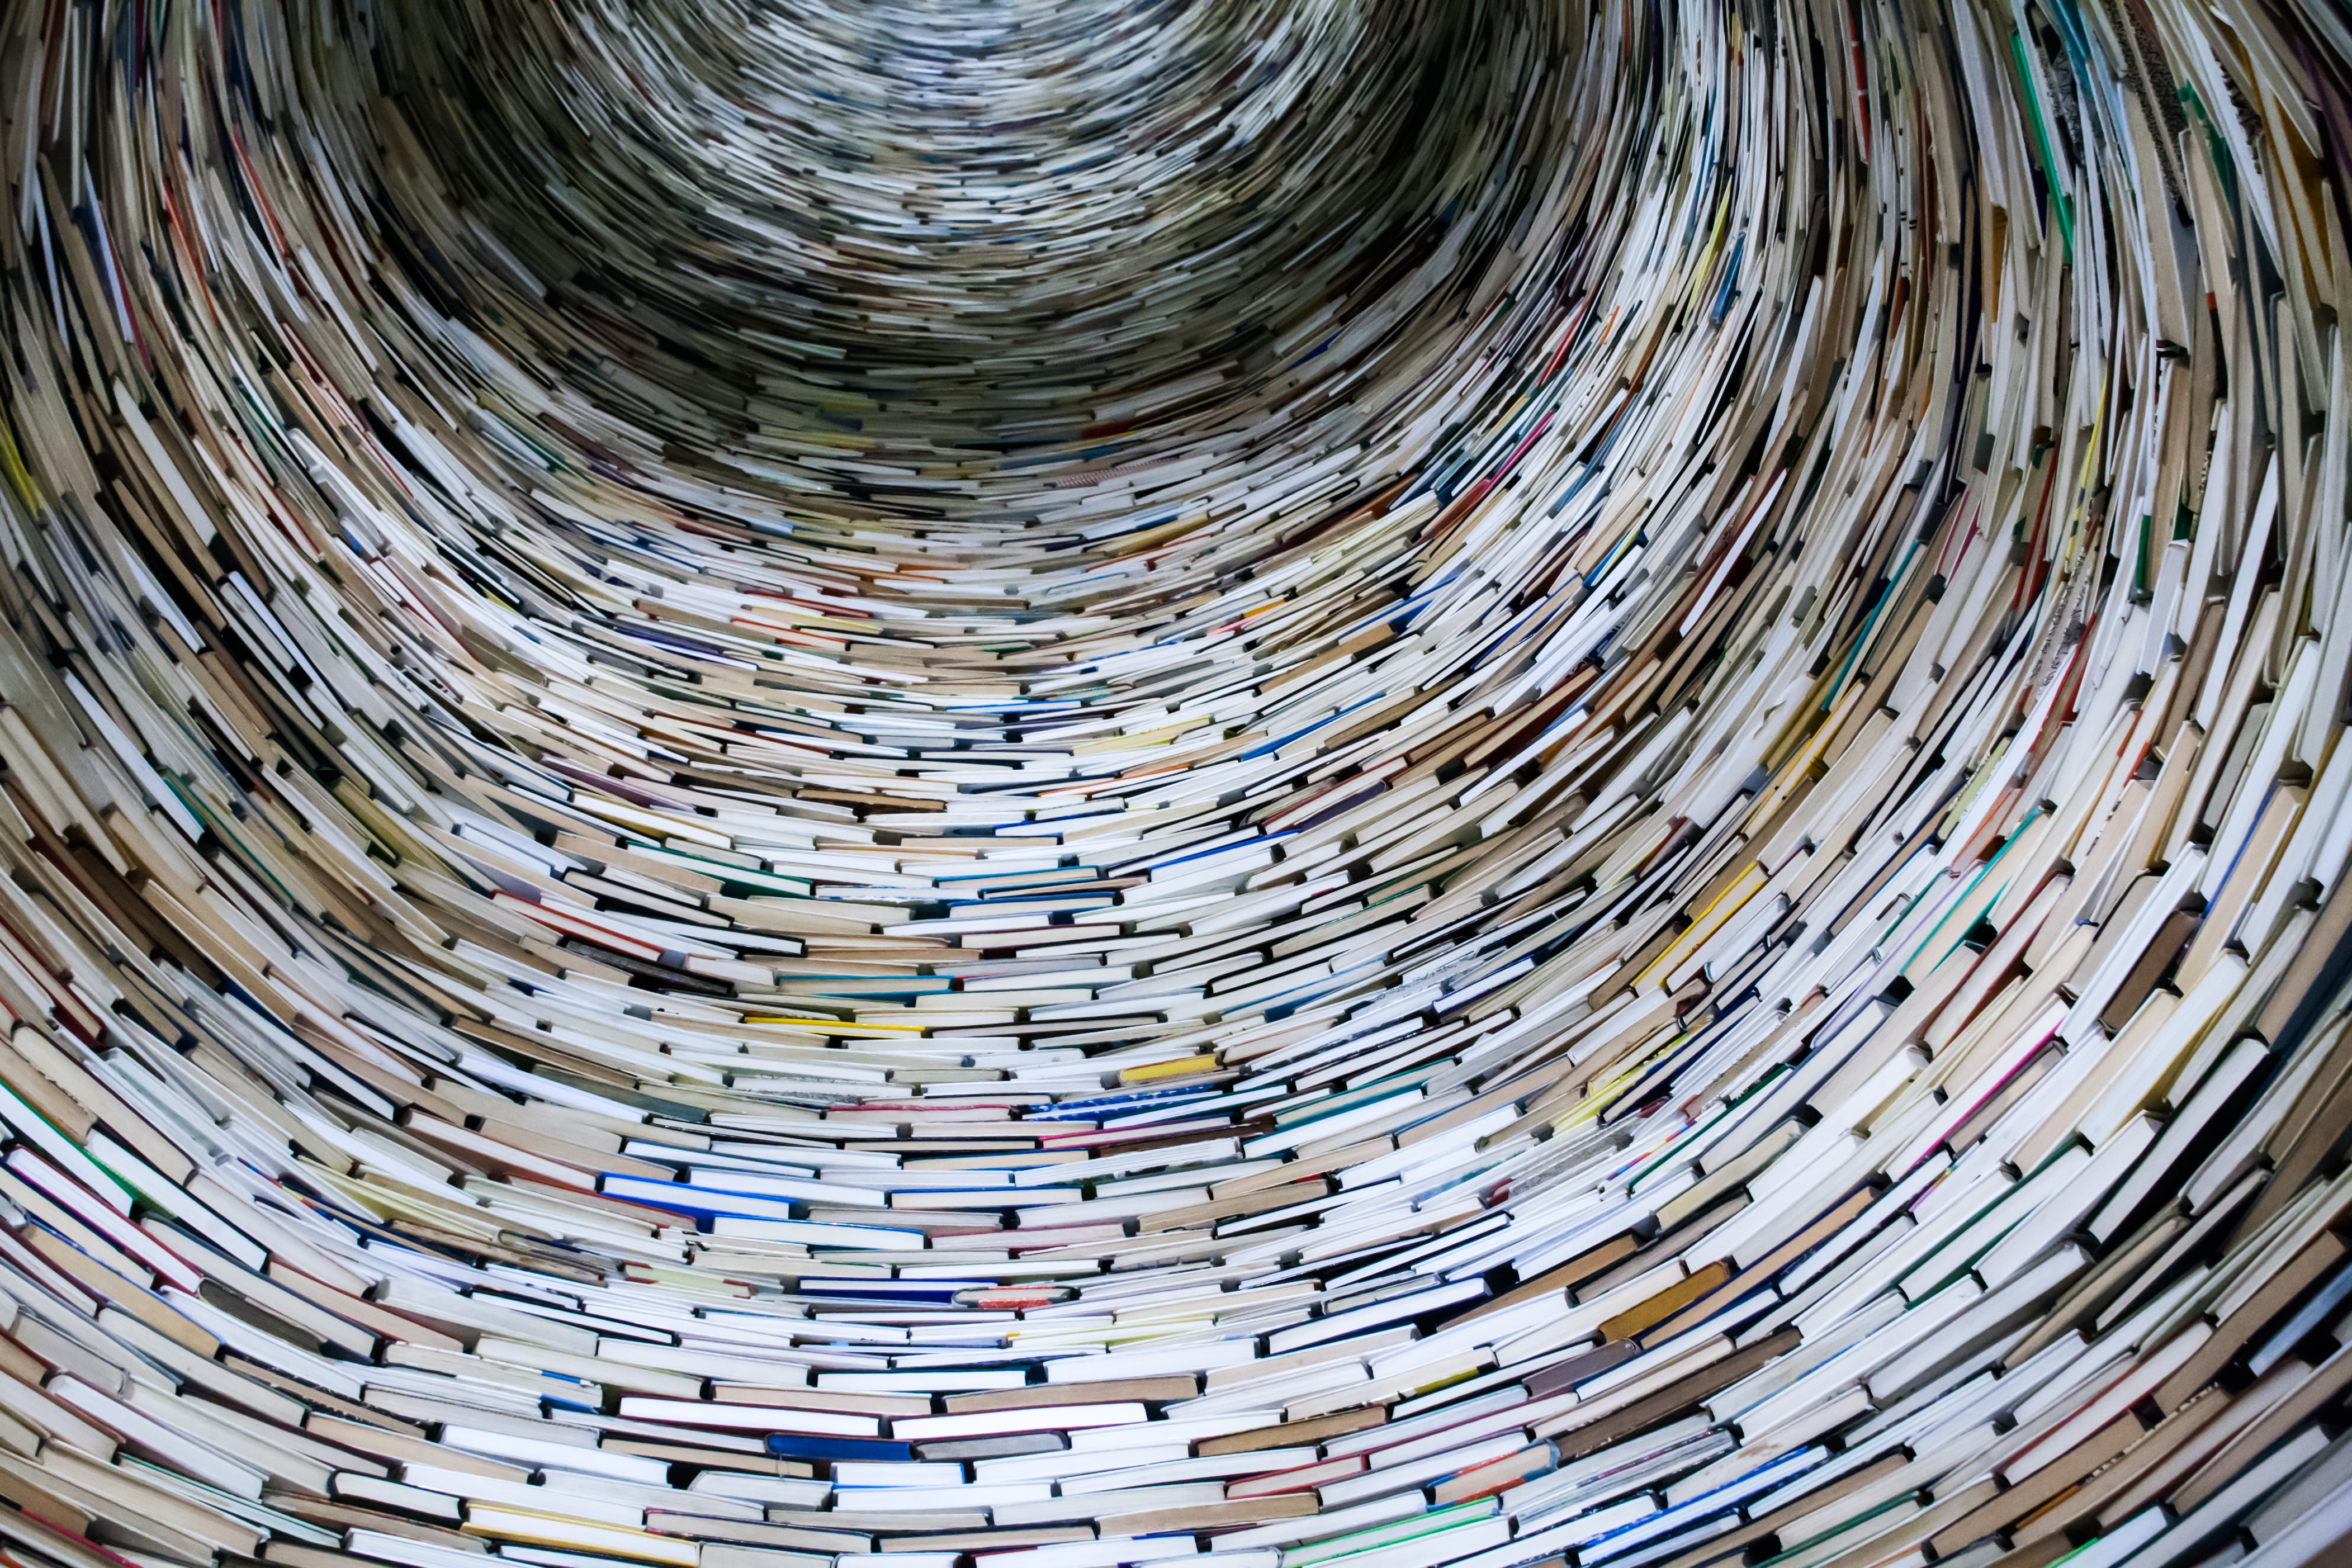 A round circle made up of books, looking like a tunnel